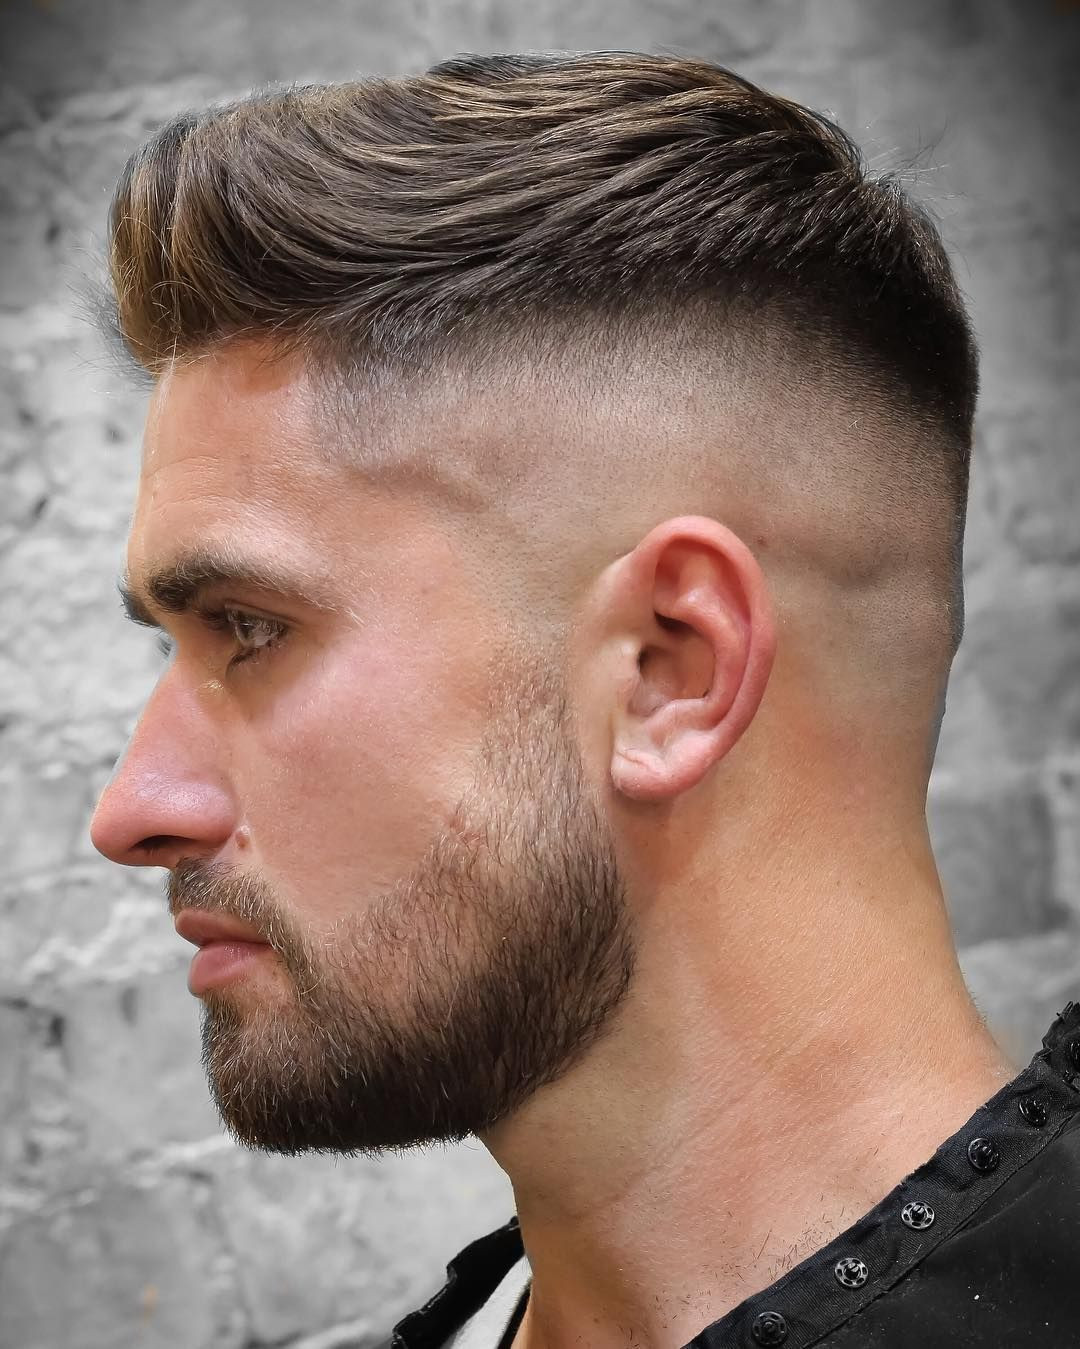 Best ideas about Mens Hairstyles 2019 . Save or Pin Mens hairstyles 2019 Hair styles in 2019 Now.